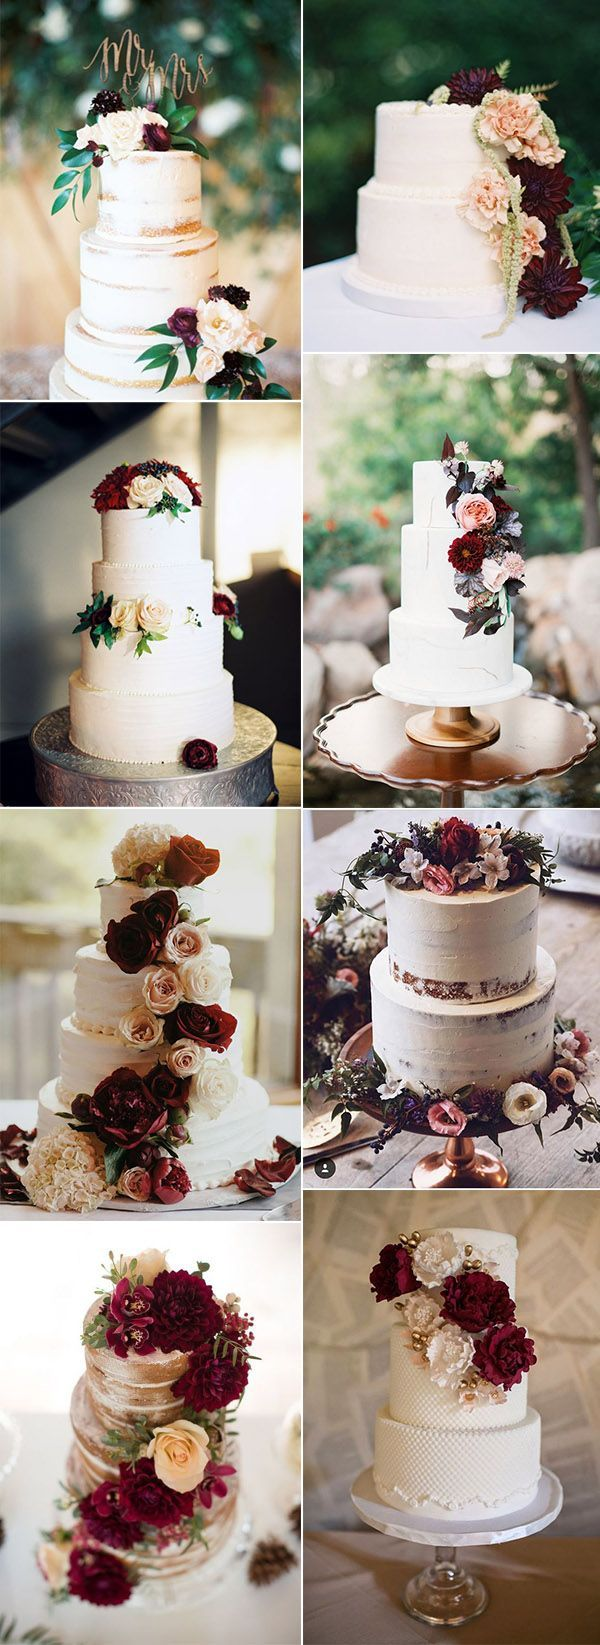 Best 25 Wedding cakes ideas on Pinterest Floral wedding cakes